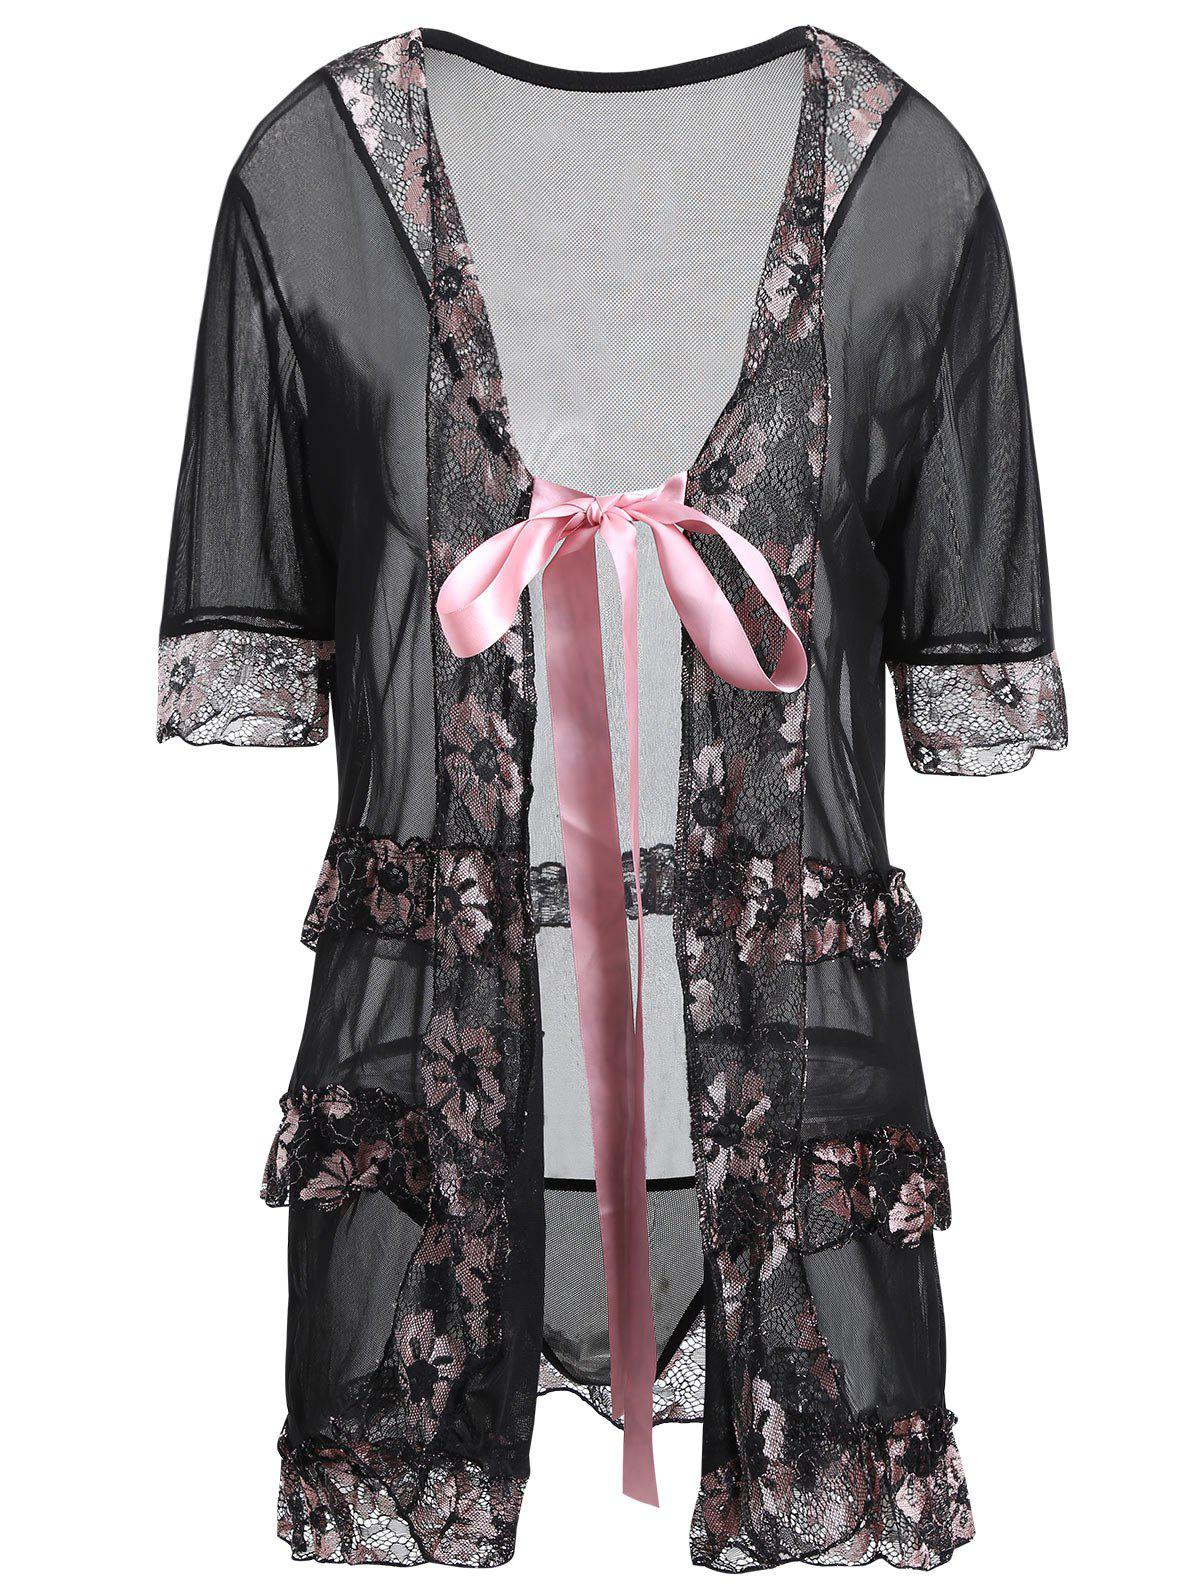 Plus Size Lingeries Lace Flowers Wrap SleepwearWOMEN<br><br>Size: 4XL; Color: BLACK; Material: Cotton,Polyester; Pattern Type: Patchwork; Embellishment: Lace,Ruffles; Weight: 0.2500kg; Package Contents: 1 x Sleepwear  1 x T Back;